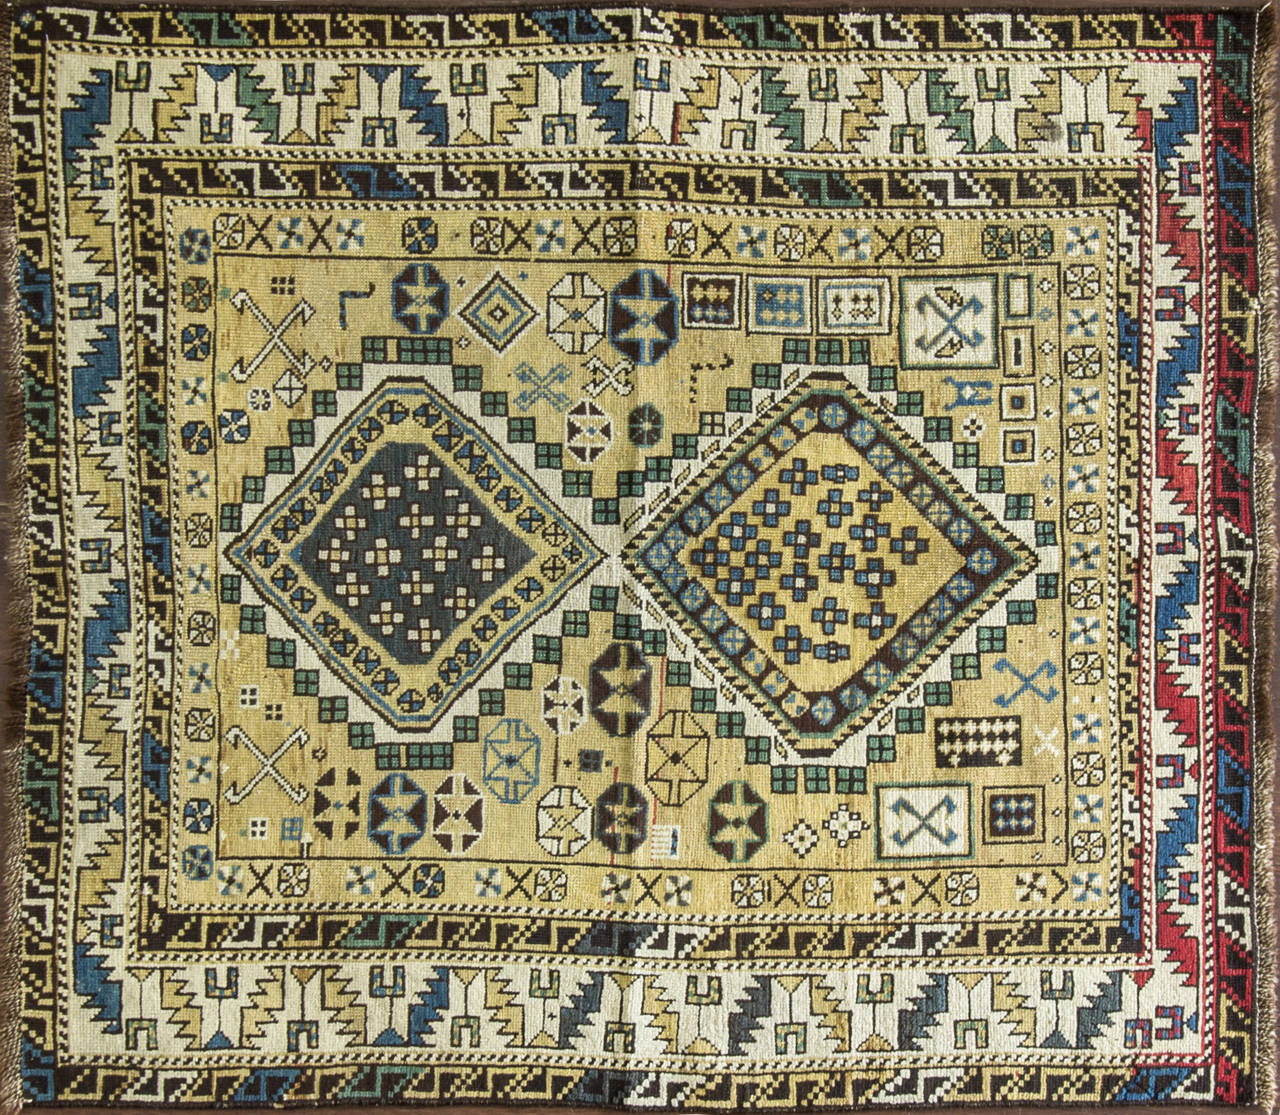 The district of Shirvan produced many highly decorative antique rugs that have complexity that is found in few rugs from the Caucasus. Shirvan, which is part of modern-day Azerbaijan, was populated by Azeri Turks and some Armenians, who were expert